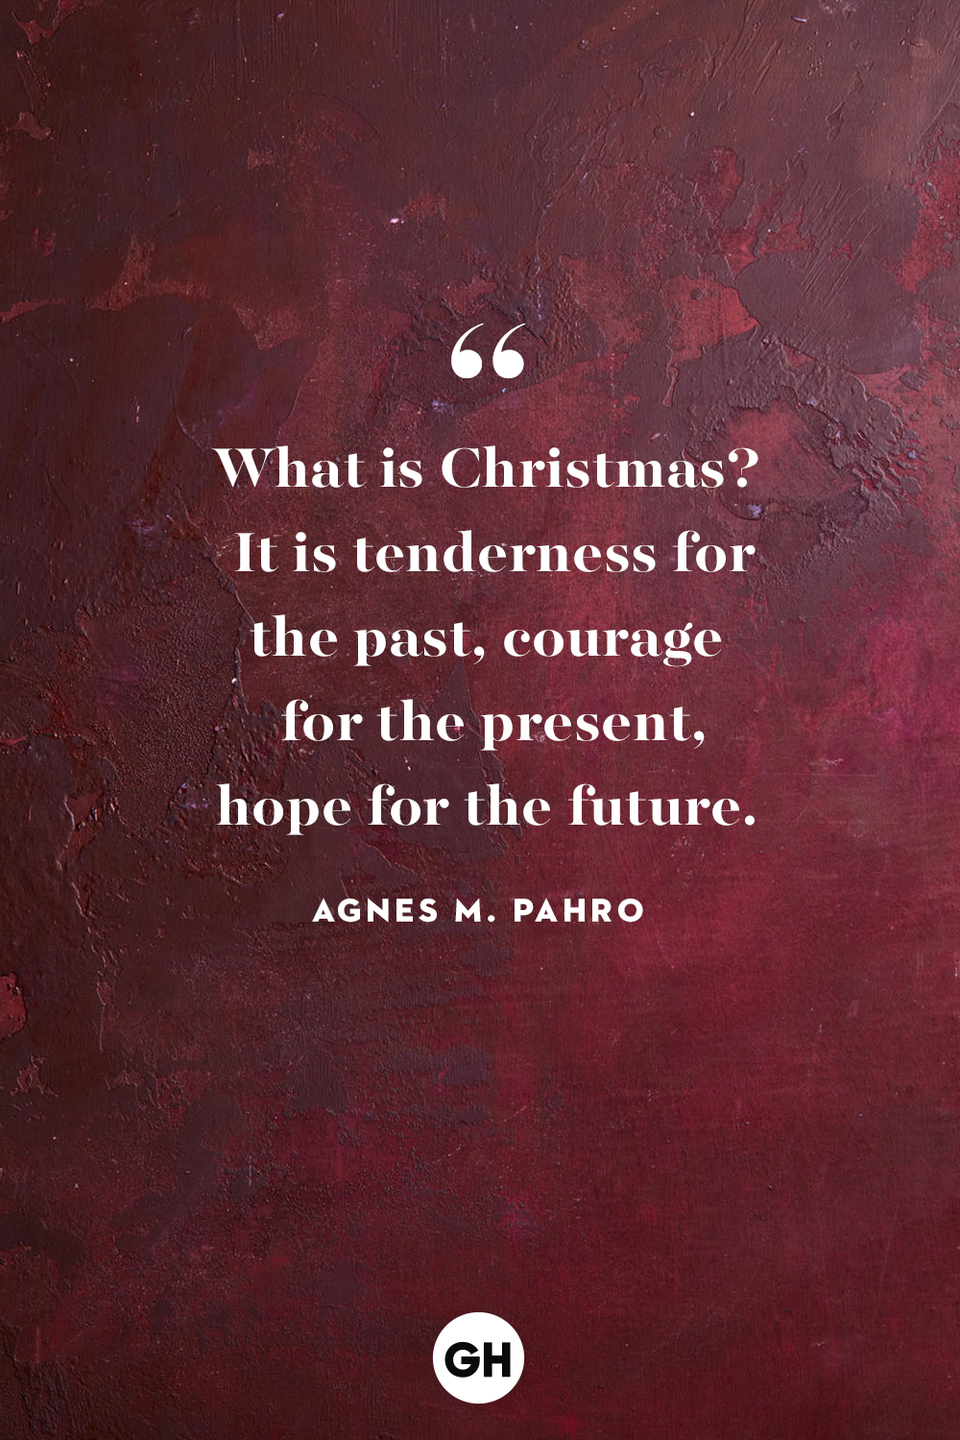 """<p>What is Christmas? It is tenderness for the past, courage for the present, hope for the future. </p><p><strong>RELATED:</strong> <a href=""""https://www.goodhousekeeping.com/holidays/christmas-ideas/a23707988/what-to-write-in-a-christmas-card/"""" rel=""""nofollow noopener"""" target=""""_blank"""" data-ylk=""""slk:Here's Exactly What to Write in a Christmas Card This Year"""" class=""""link rapid-noclick-resp"""">Here's Exactly What to Write in a Christmas Card This Year</a></p>"""